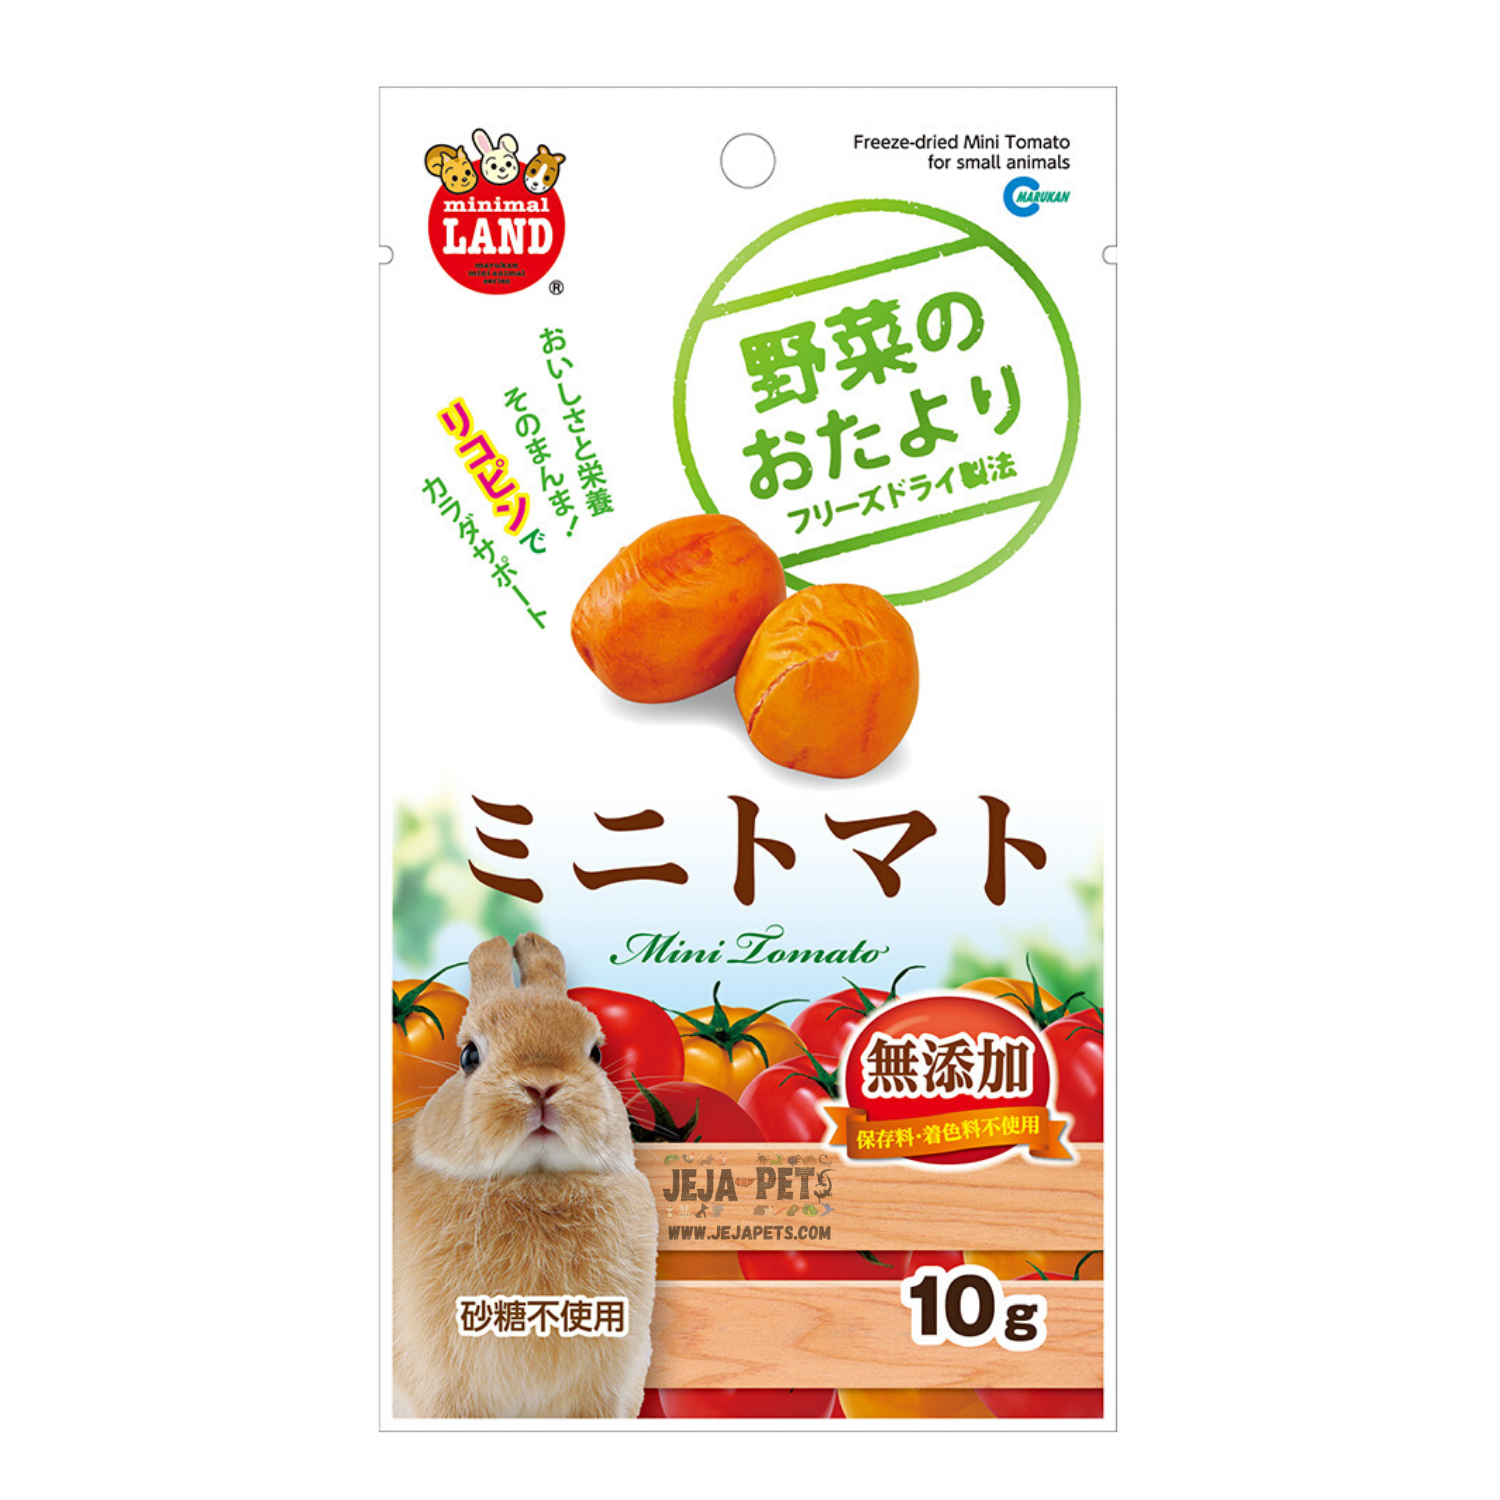 Marukan Freeze Dried Cherry Tomato for Small Animals - 10g